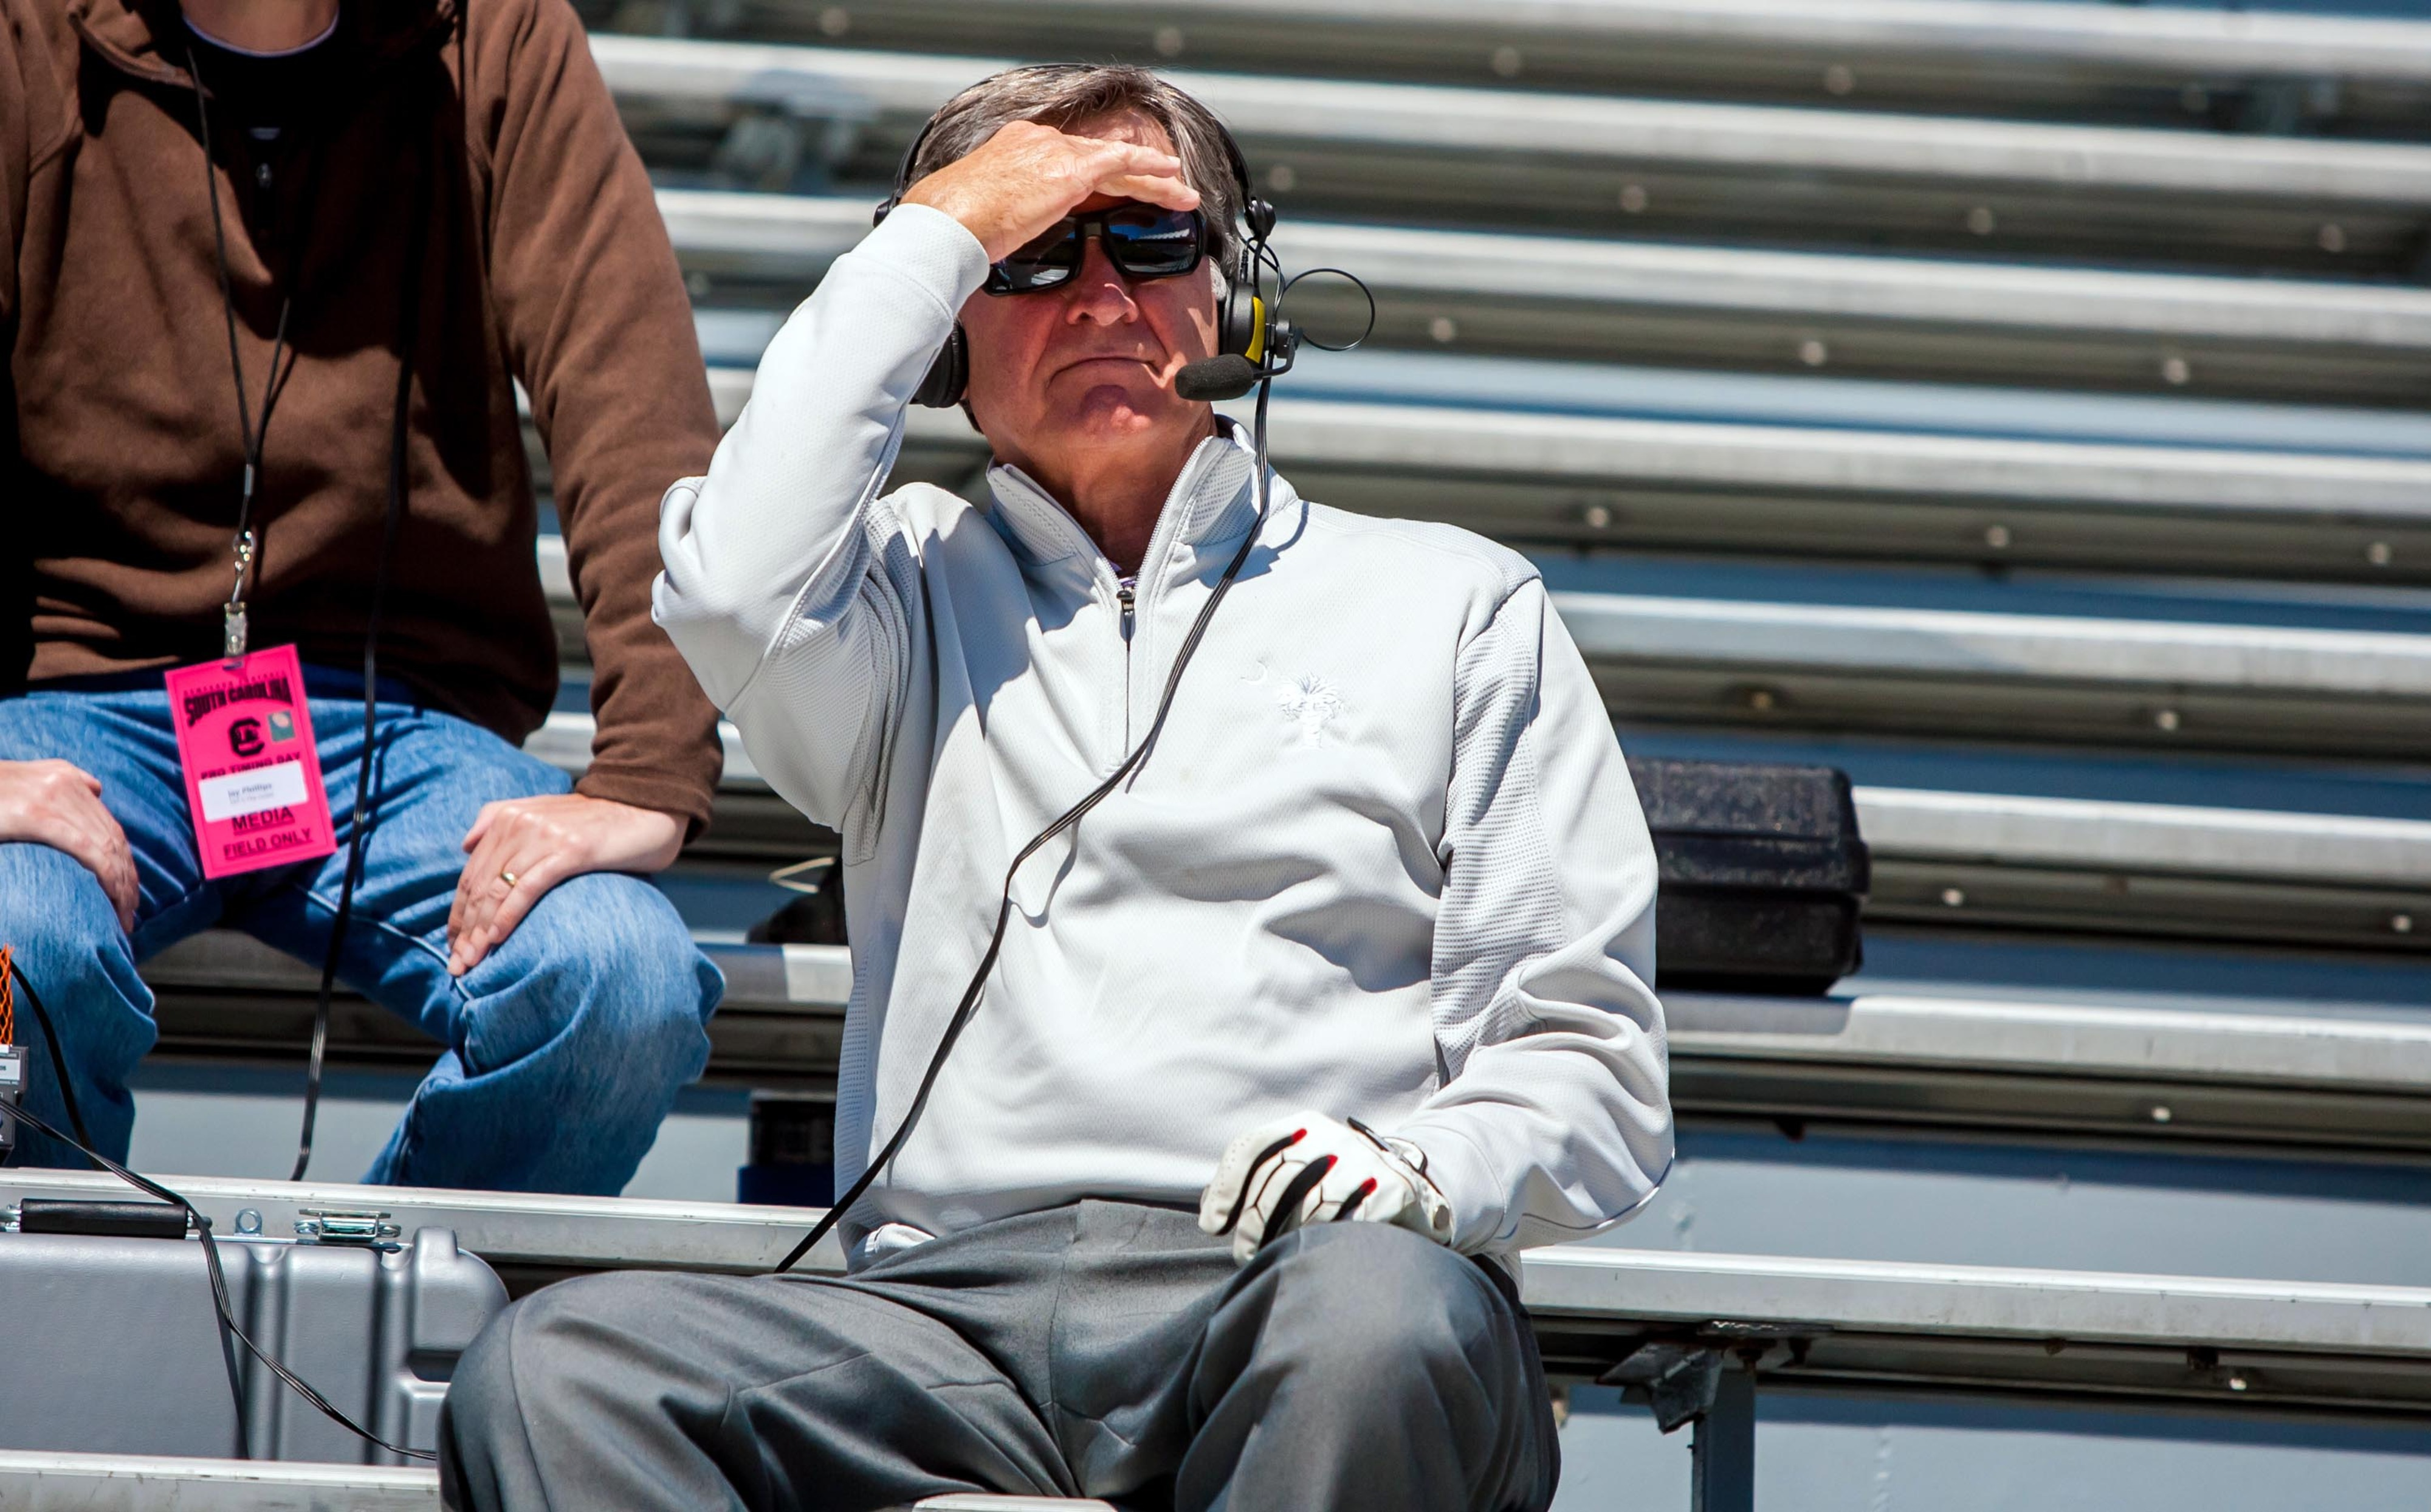 Steve Spurrier, probably contemplating the latest shareable content on the world wide web